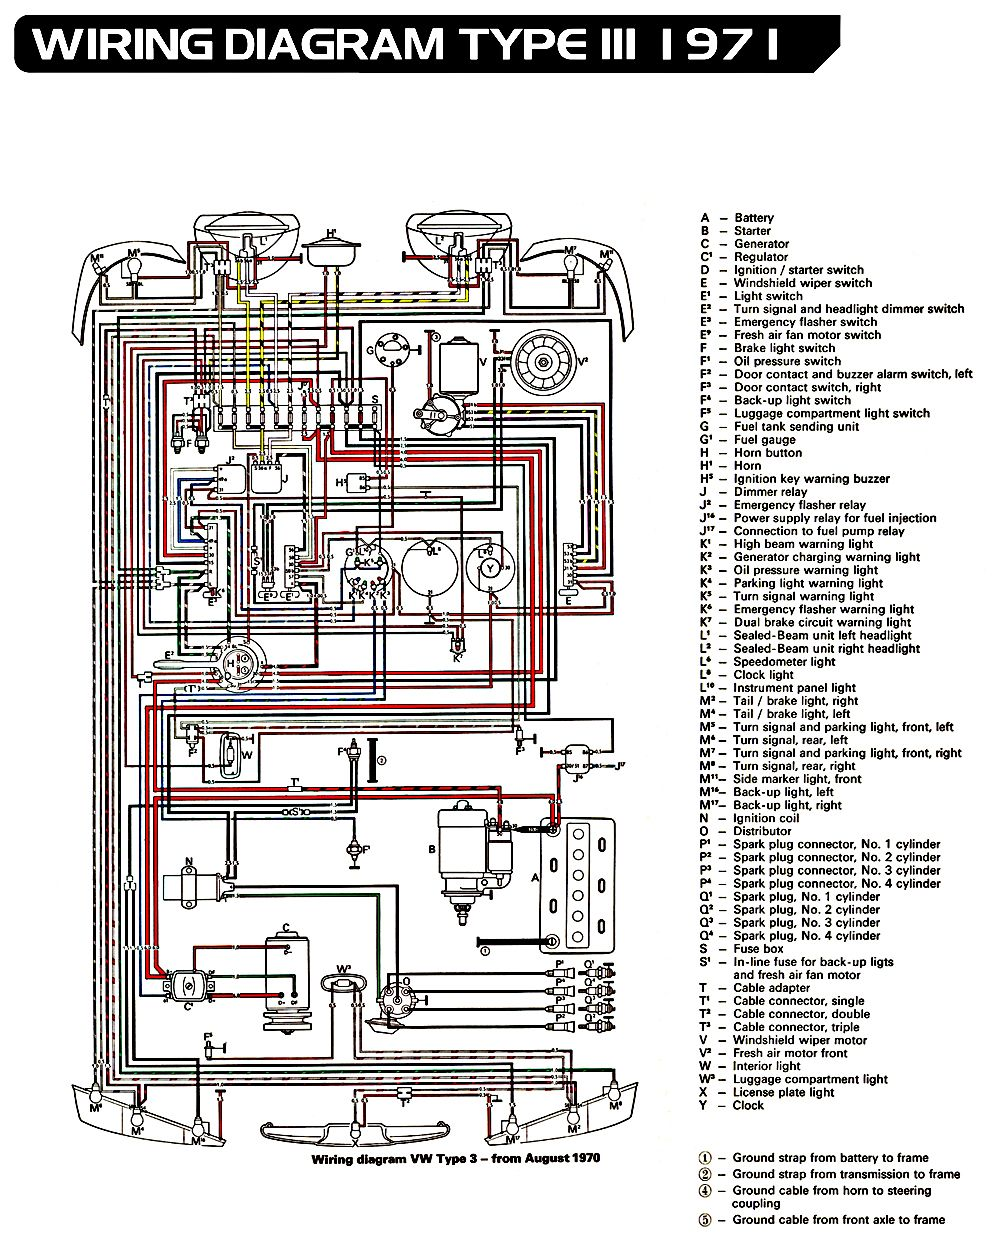 small resolution of 1971 type 3 vw wiring diagram so simple compared to a modern ecu rh pinterest com